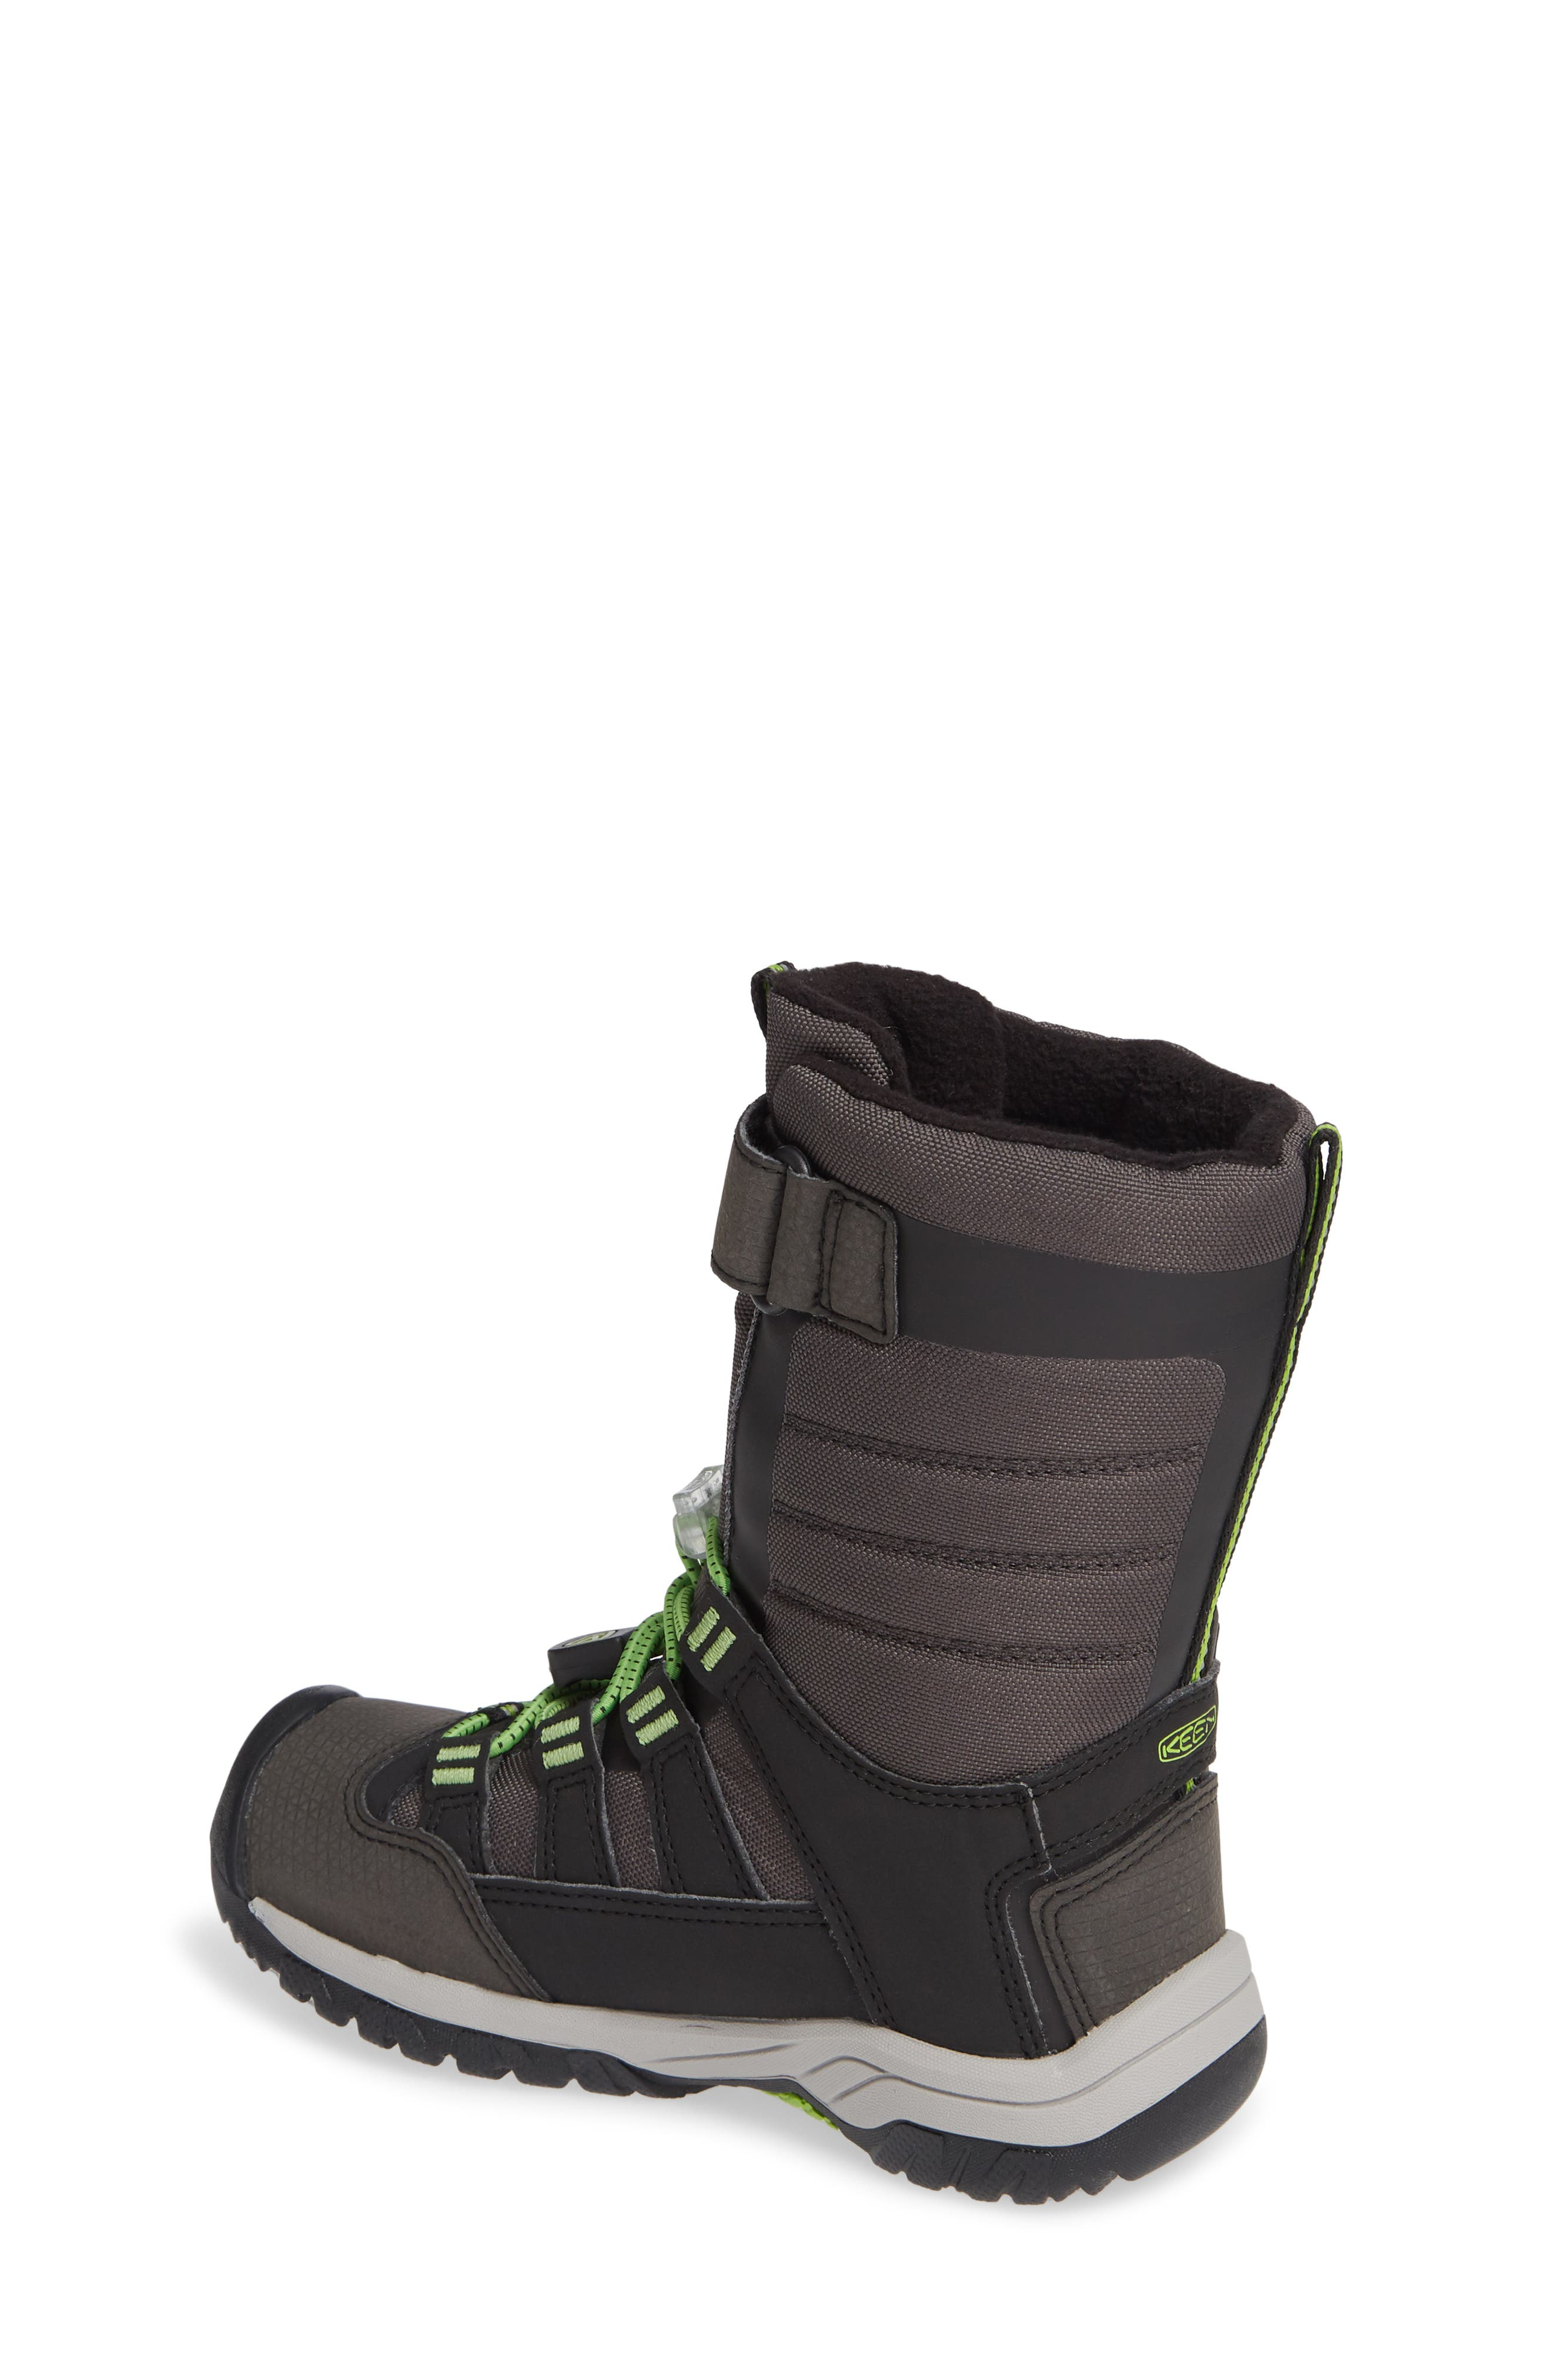 Winterport Neo Waterproof Insulated Boot,                             Alternate thumbnail 2, color,                             BLACK/ GREENERY